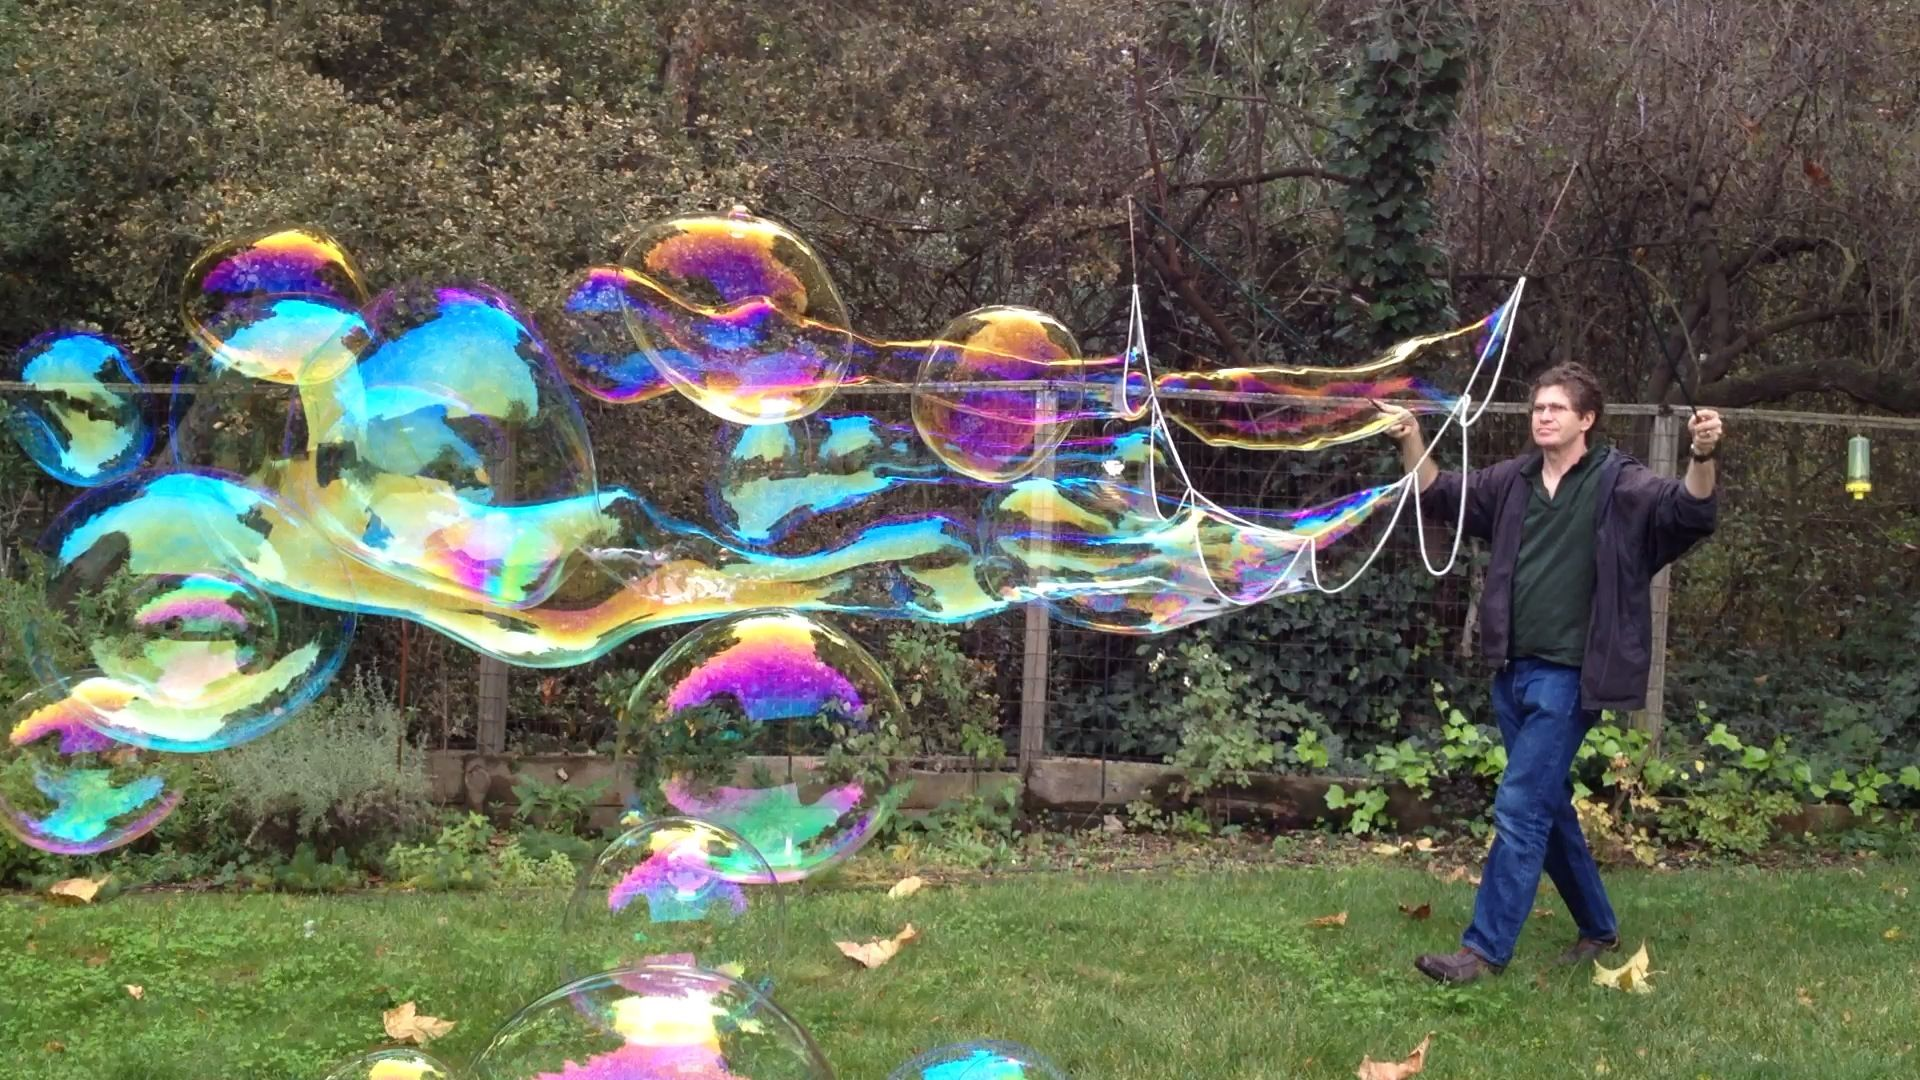 Garland With Images Bubble Wands Giant Bubbles Giant Bubble